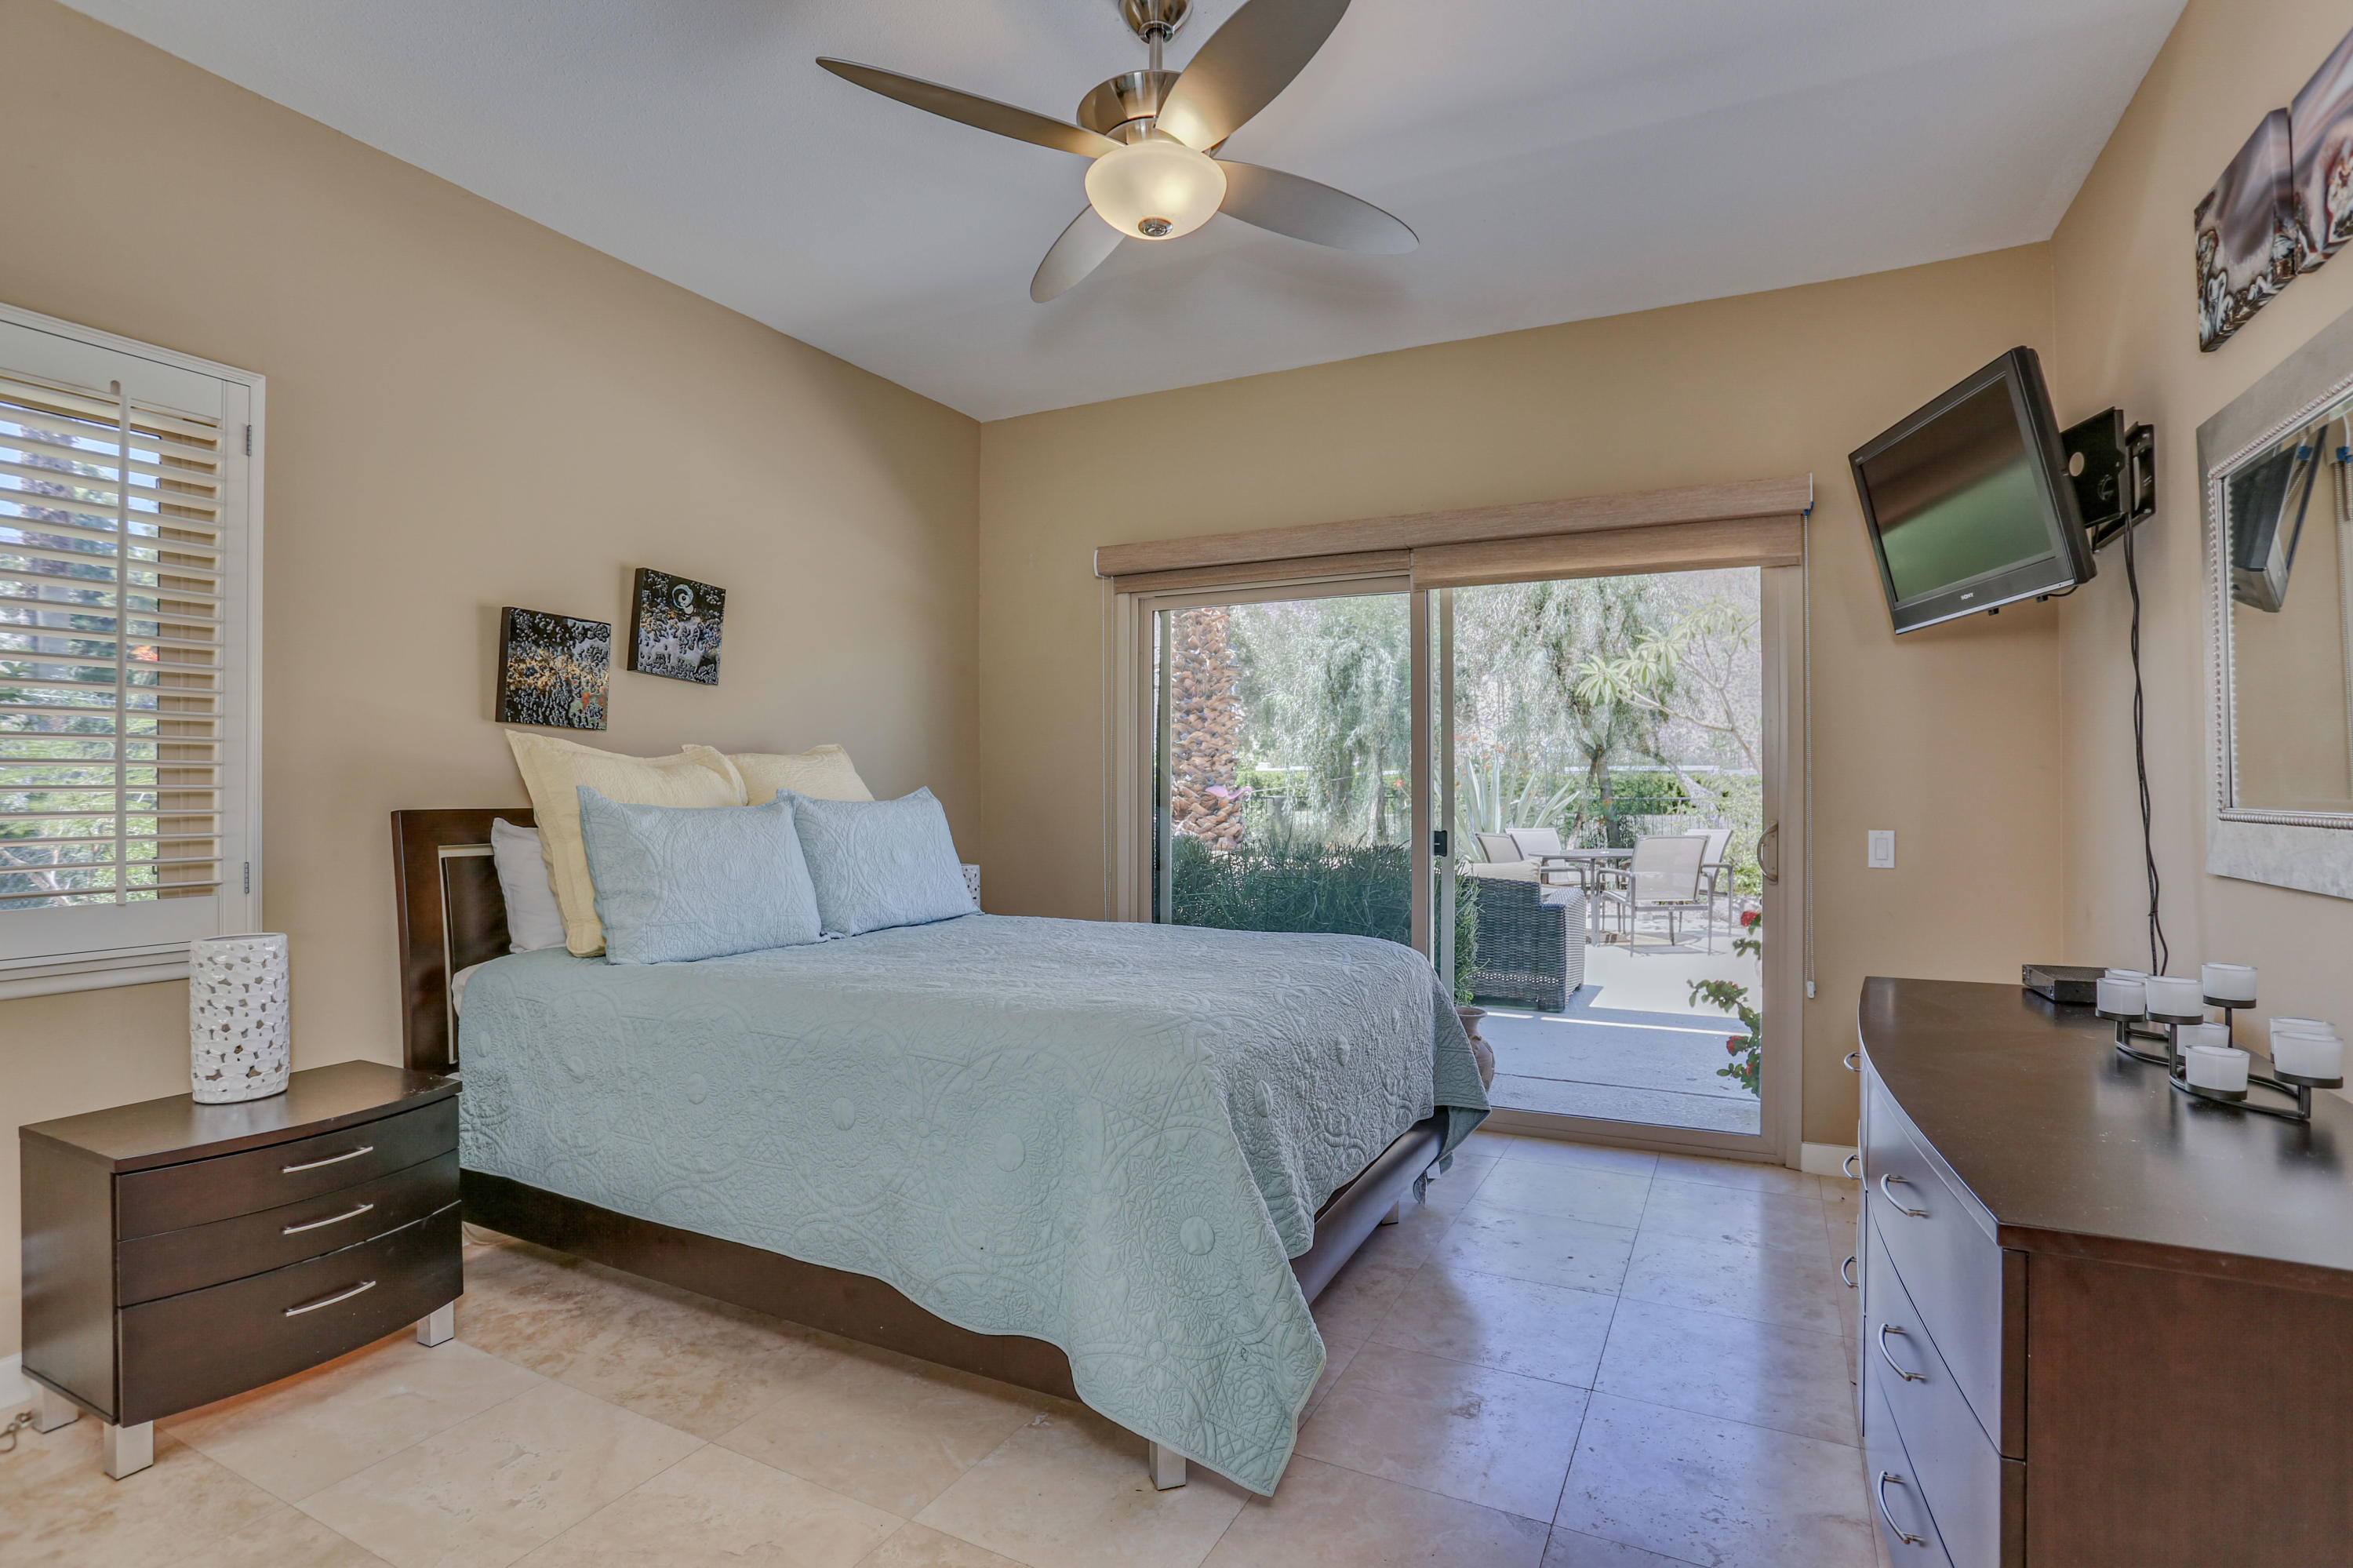 2719 Bonita Circle, Palm Springs, California 92264, 4 Bedrooms Bedrooms, ,4 BathroomsBathrooms,Residential,For Sale,2719 Bonita Circle,219034773